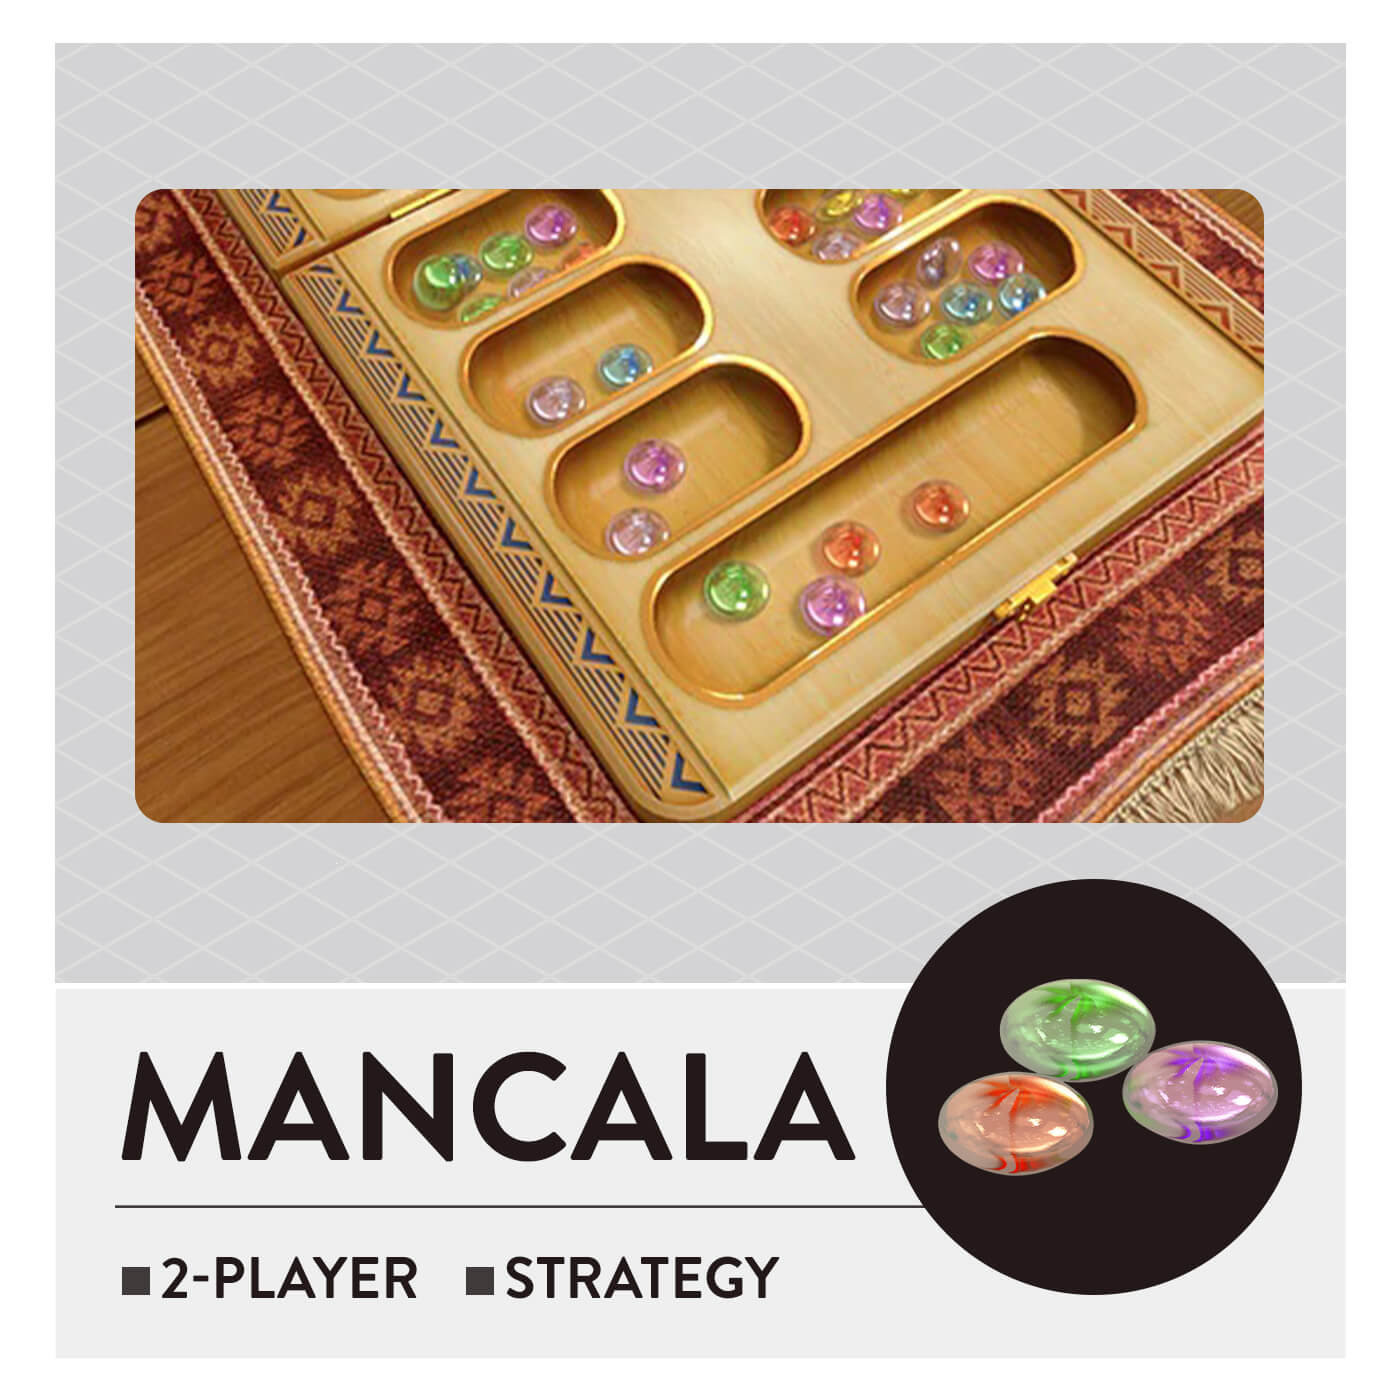 51 Worldwide Games - Mancala